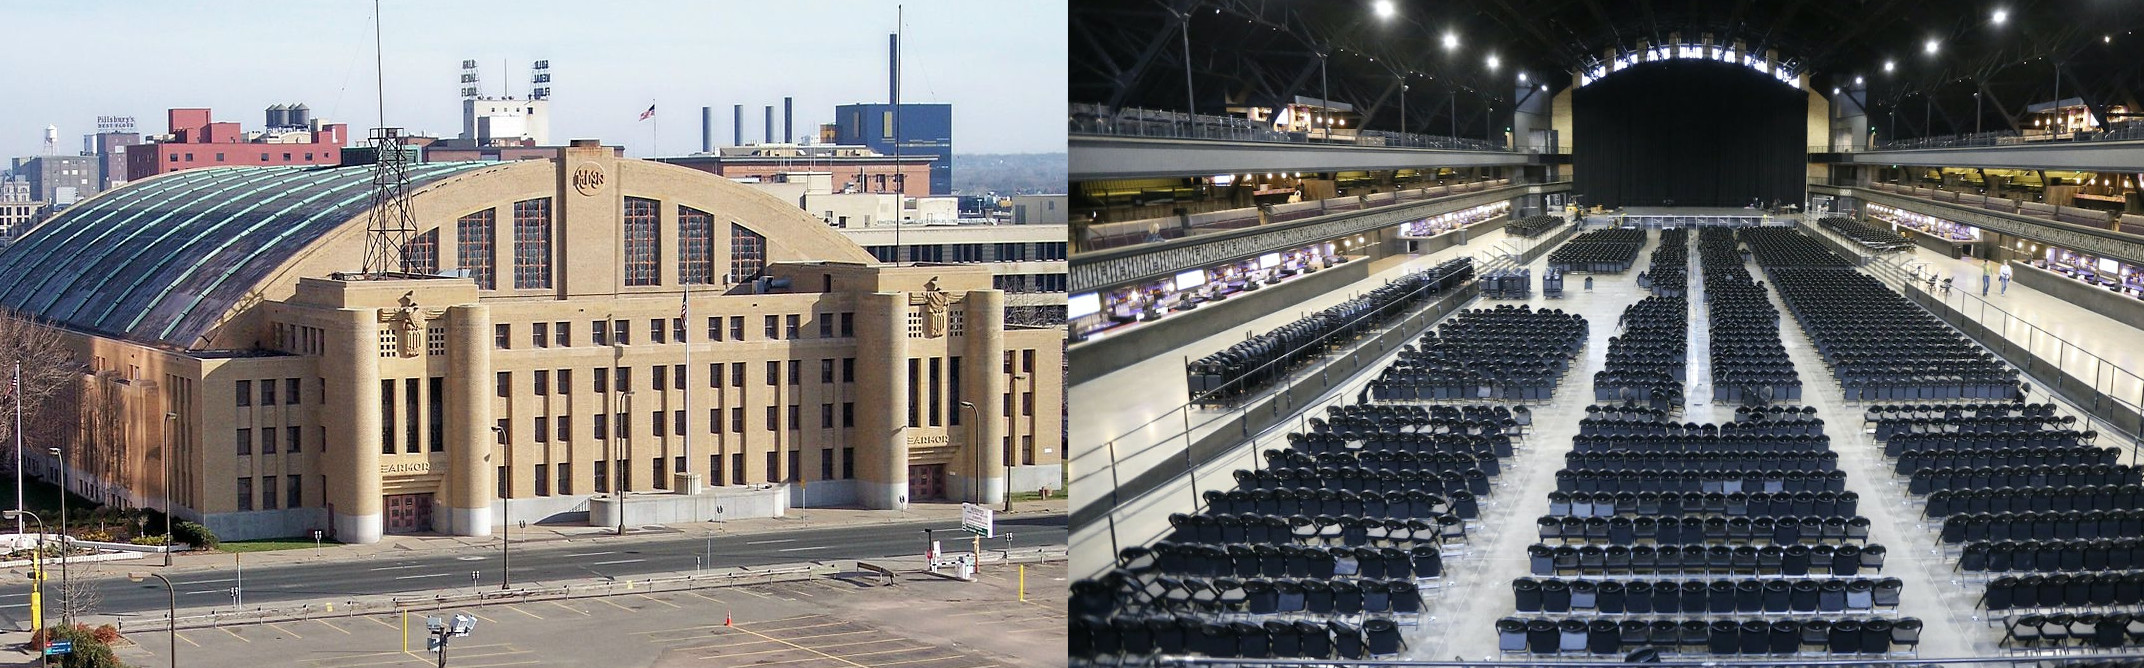 The interior and exterior view of the Minneapolis Armory Arena